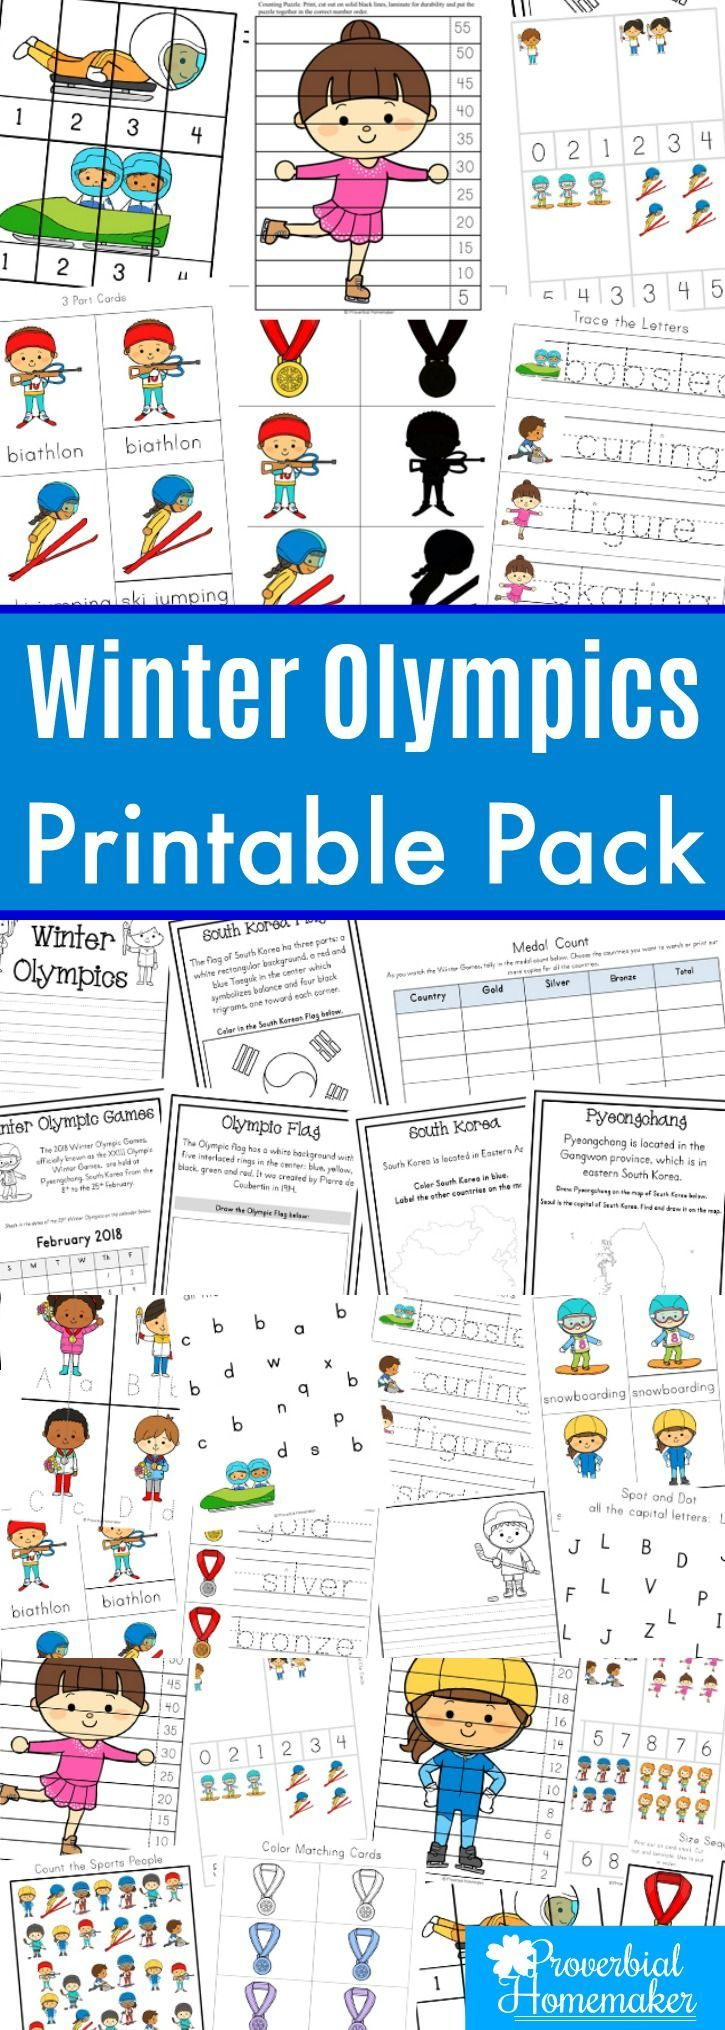 Learn about the Winter Olympics with this fun printable pack! Great for kids 2-9 years old and covering the 2018 Olympic Winter Games.   #winterolympics #olympics #wintergames #2018olympics #printables #homeschool #homeschoolprintables #freebie #freebies